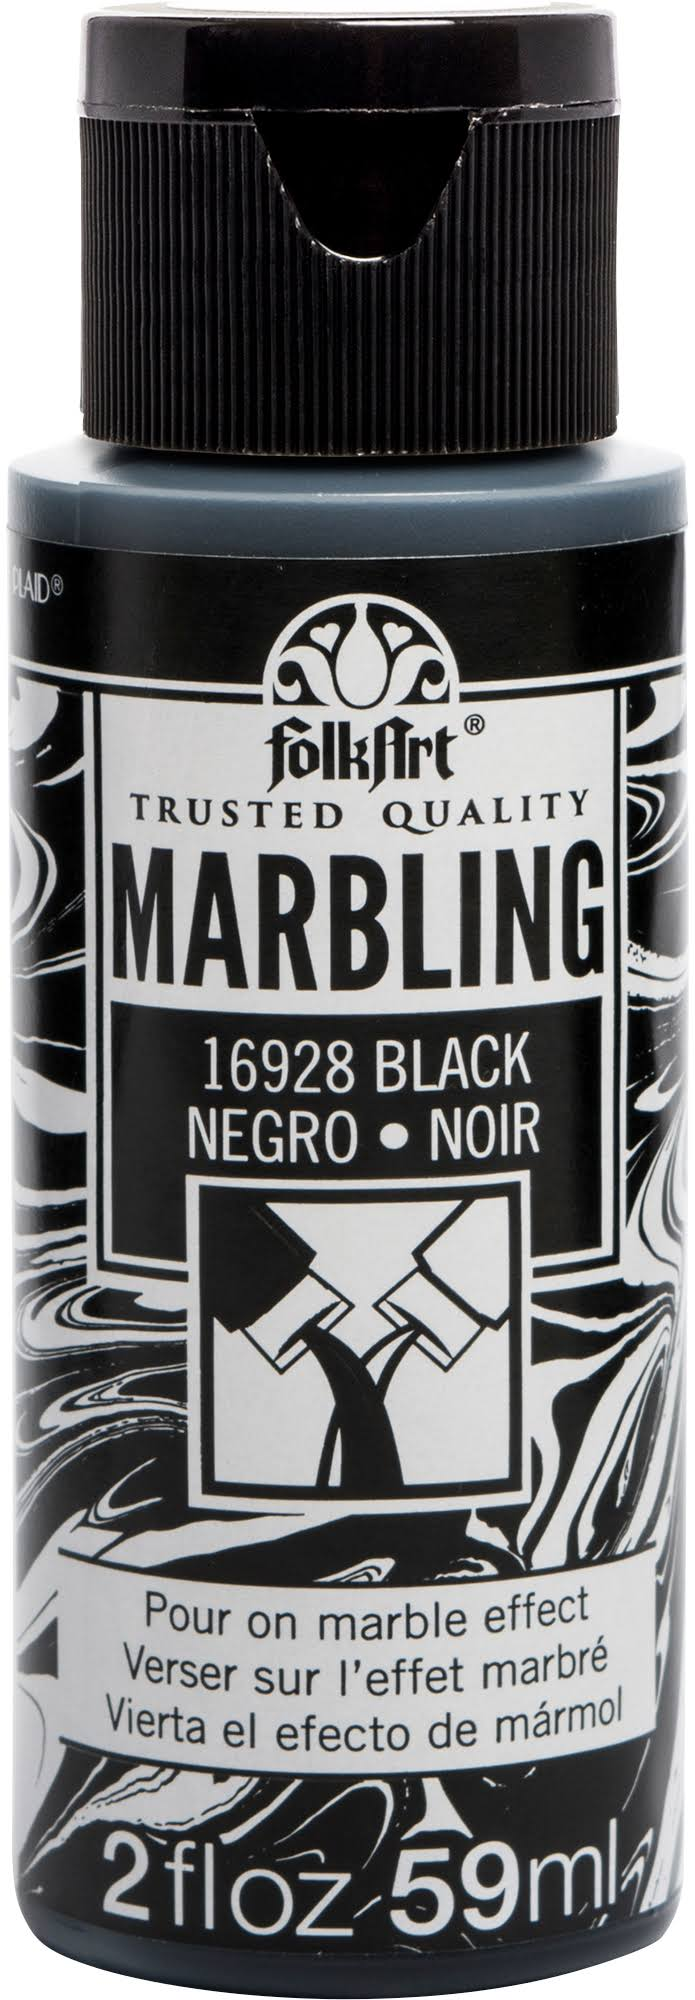 FolkArt Marbling Paint - Black, 2 oz.